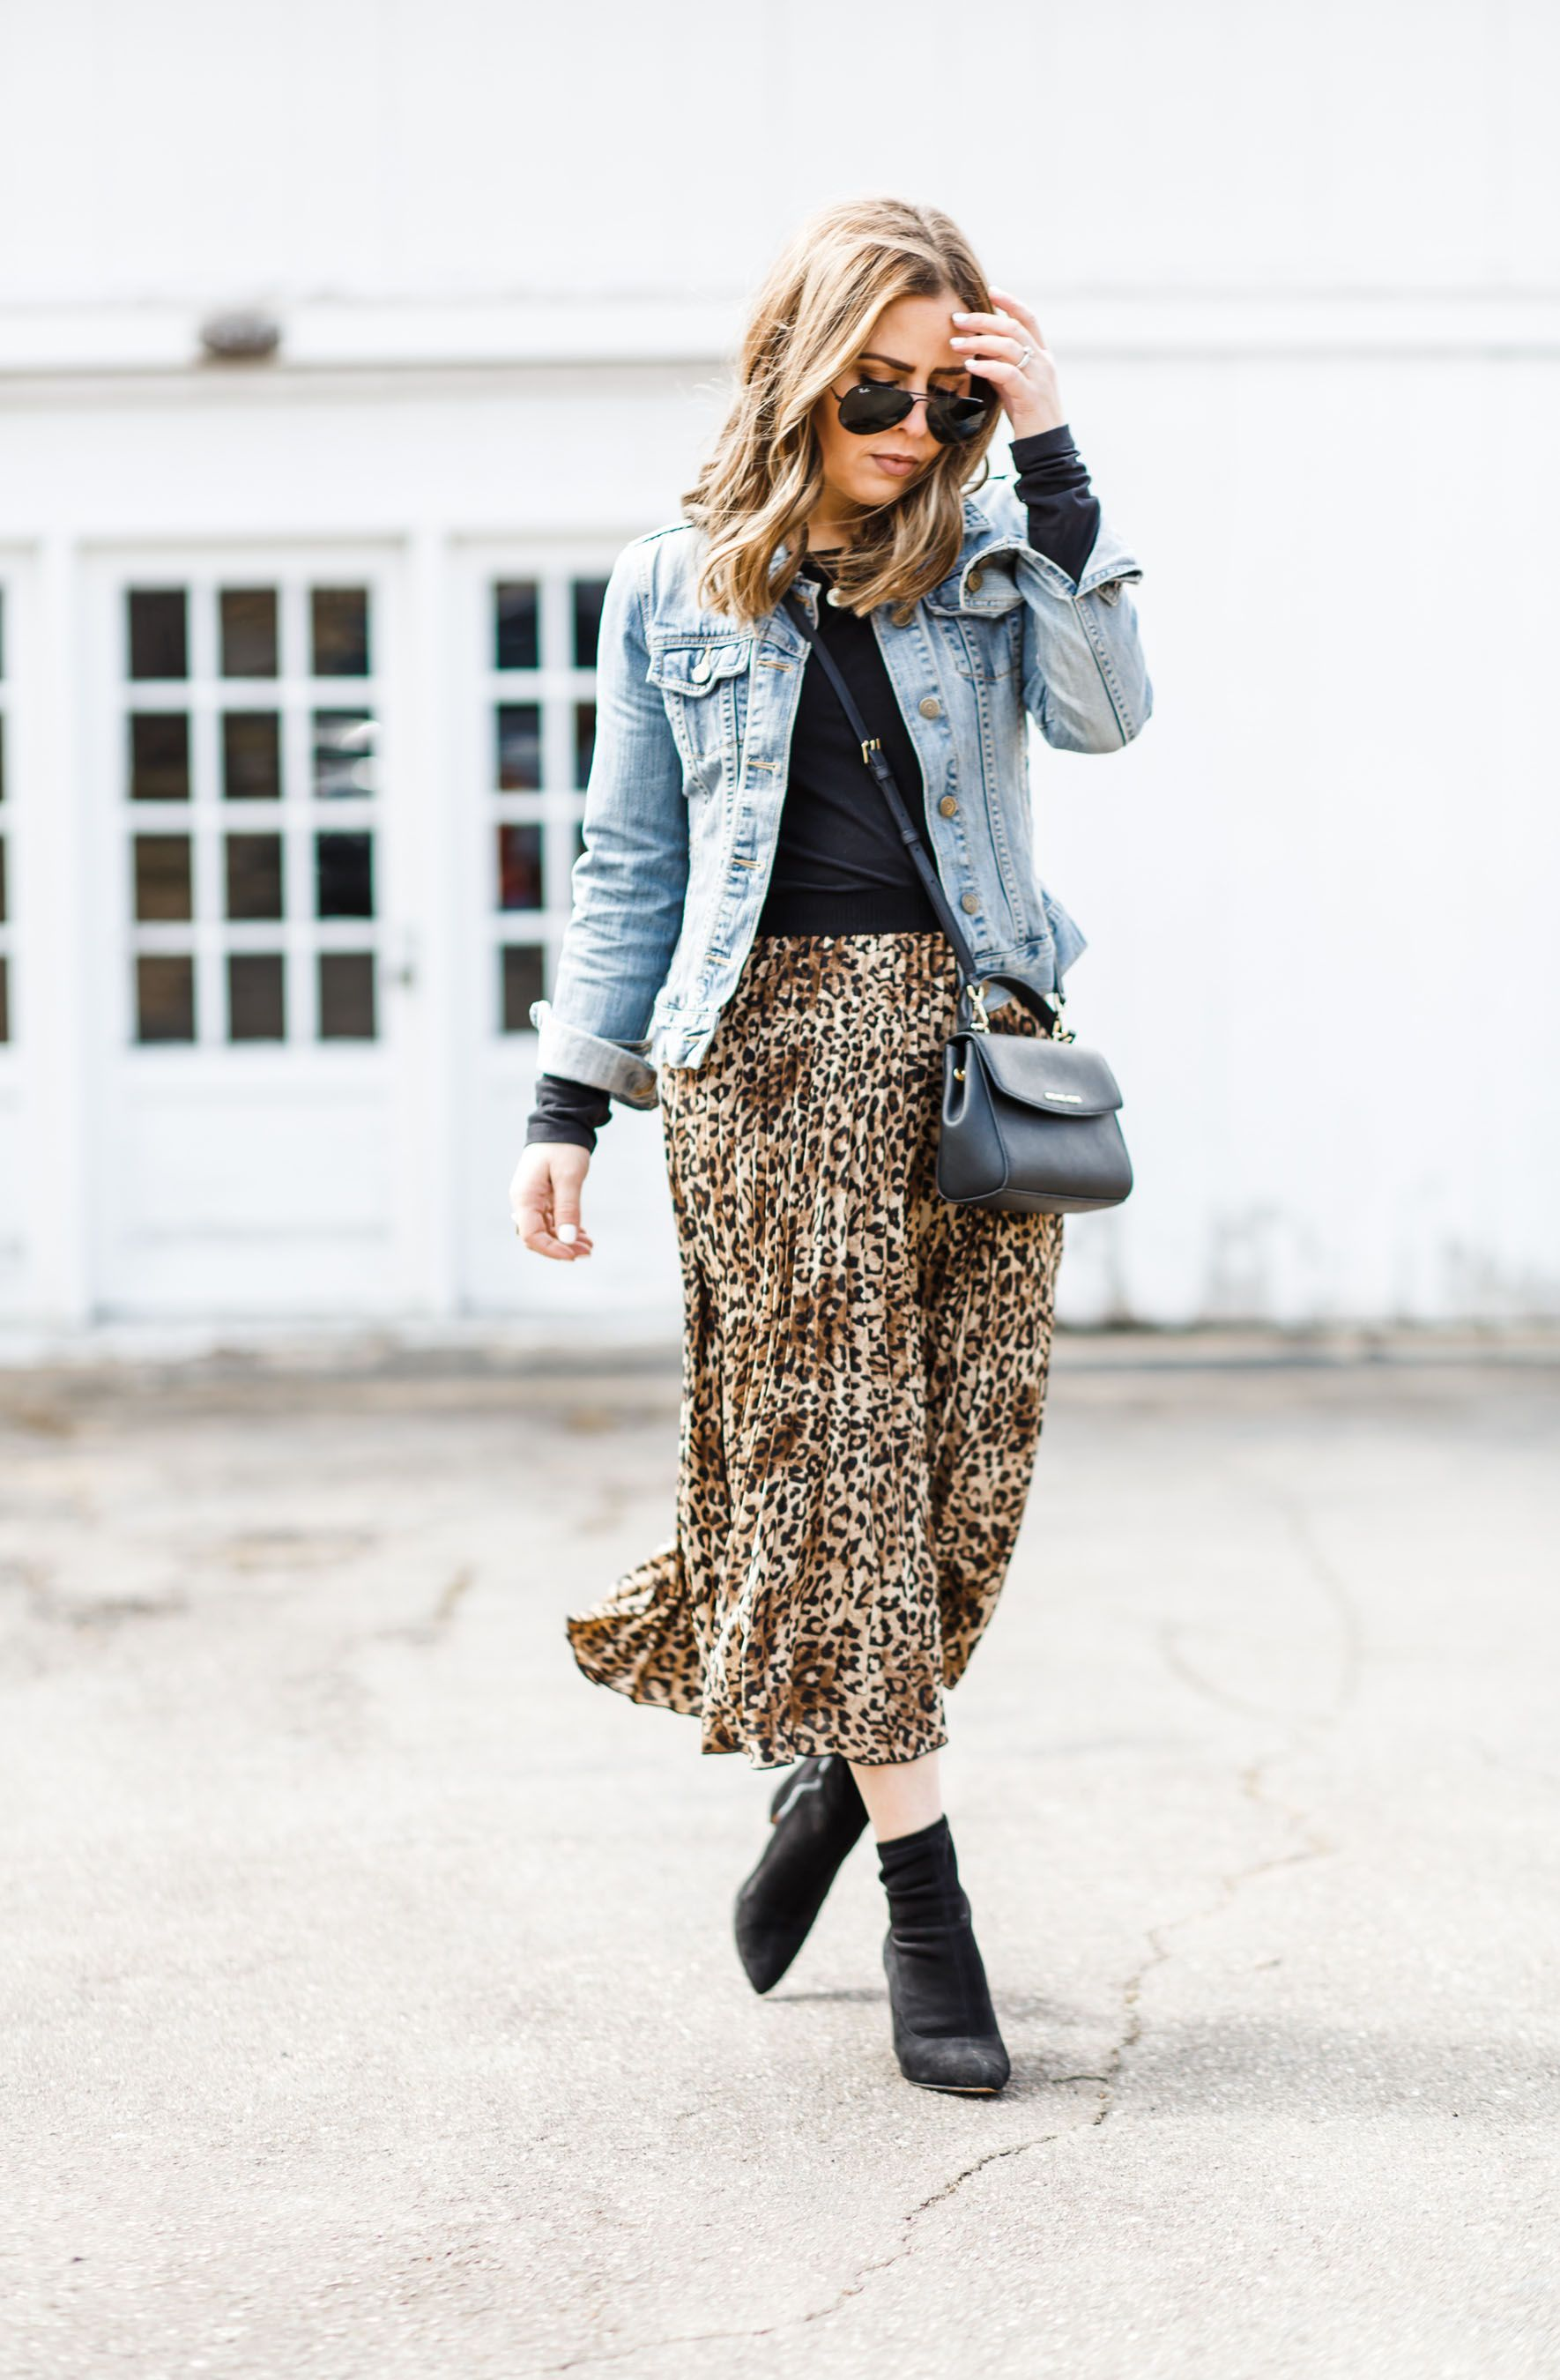 d529ffe1a629 leopard print: the spring trend you should definitely try this season.